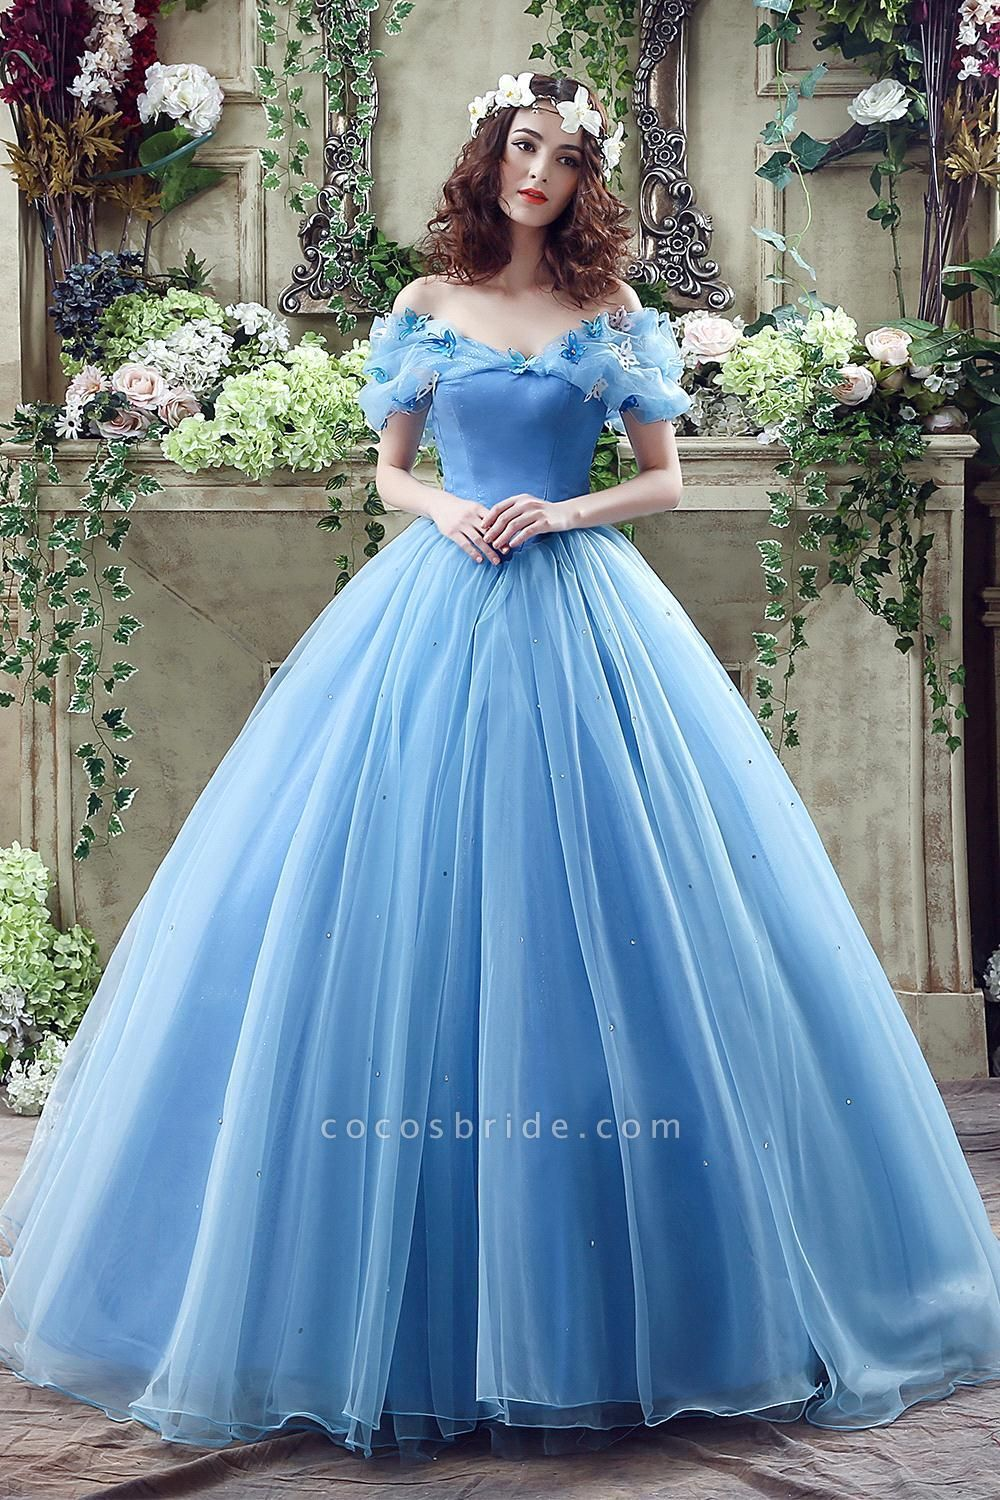 Off-the-Shoulder Sequins Tulle Blue Ball Gown Wedding Dress